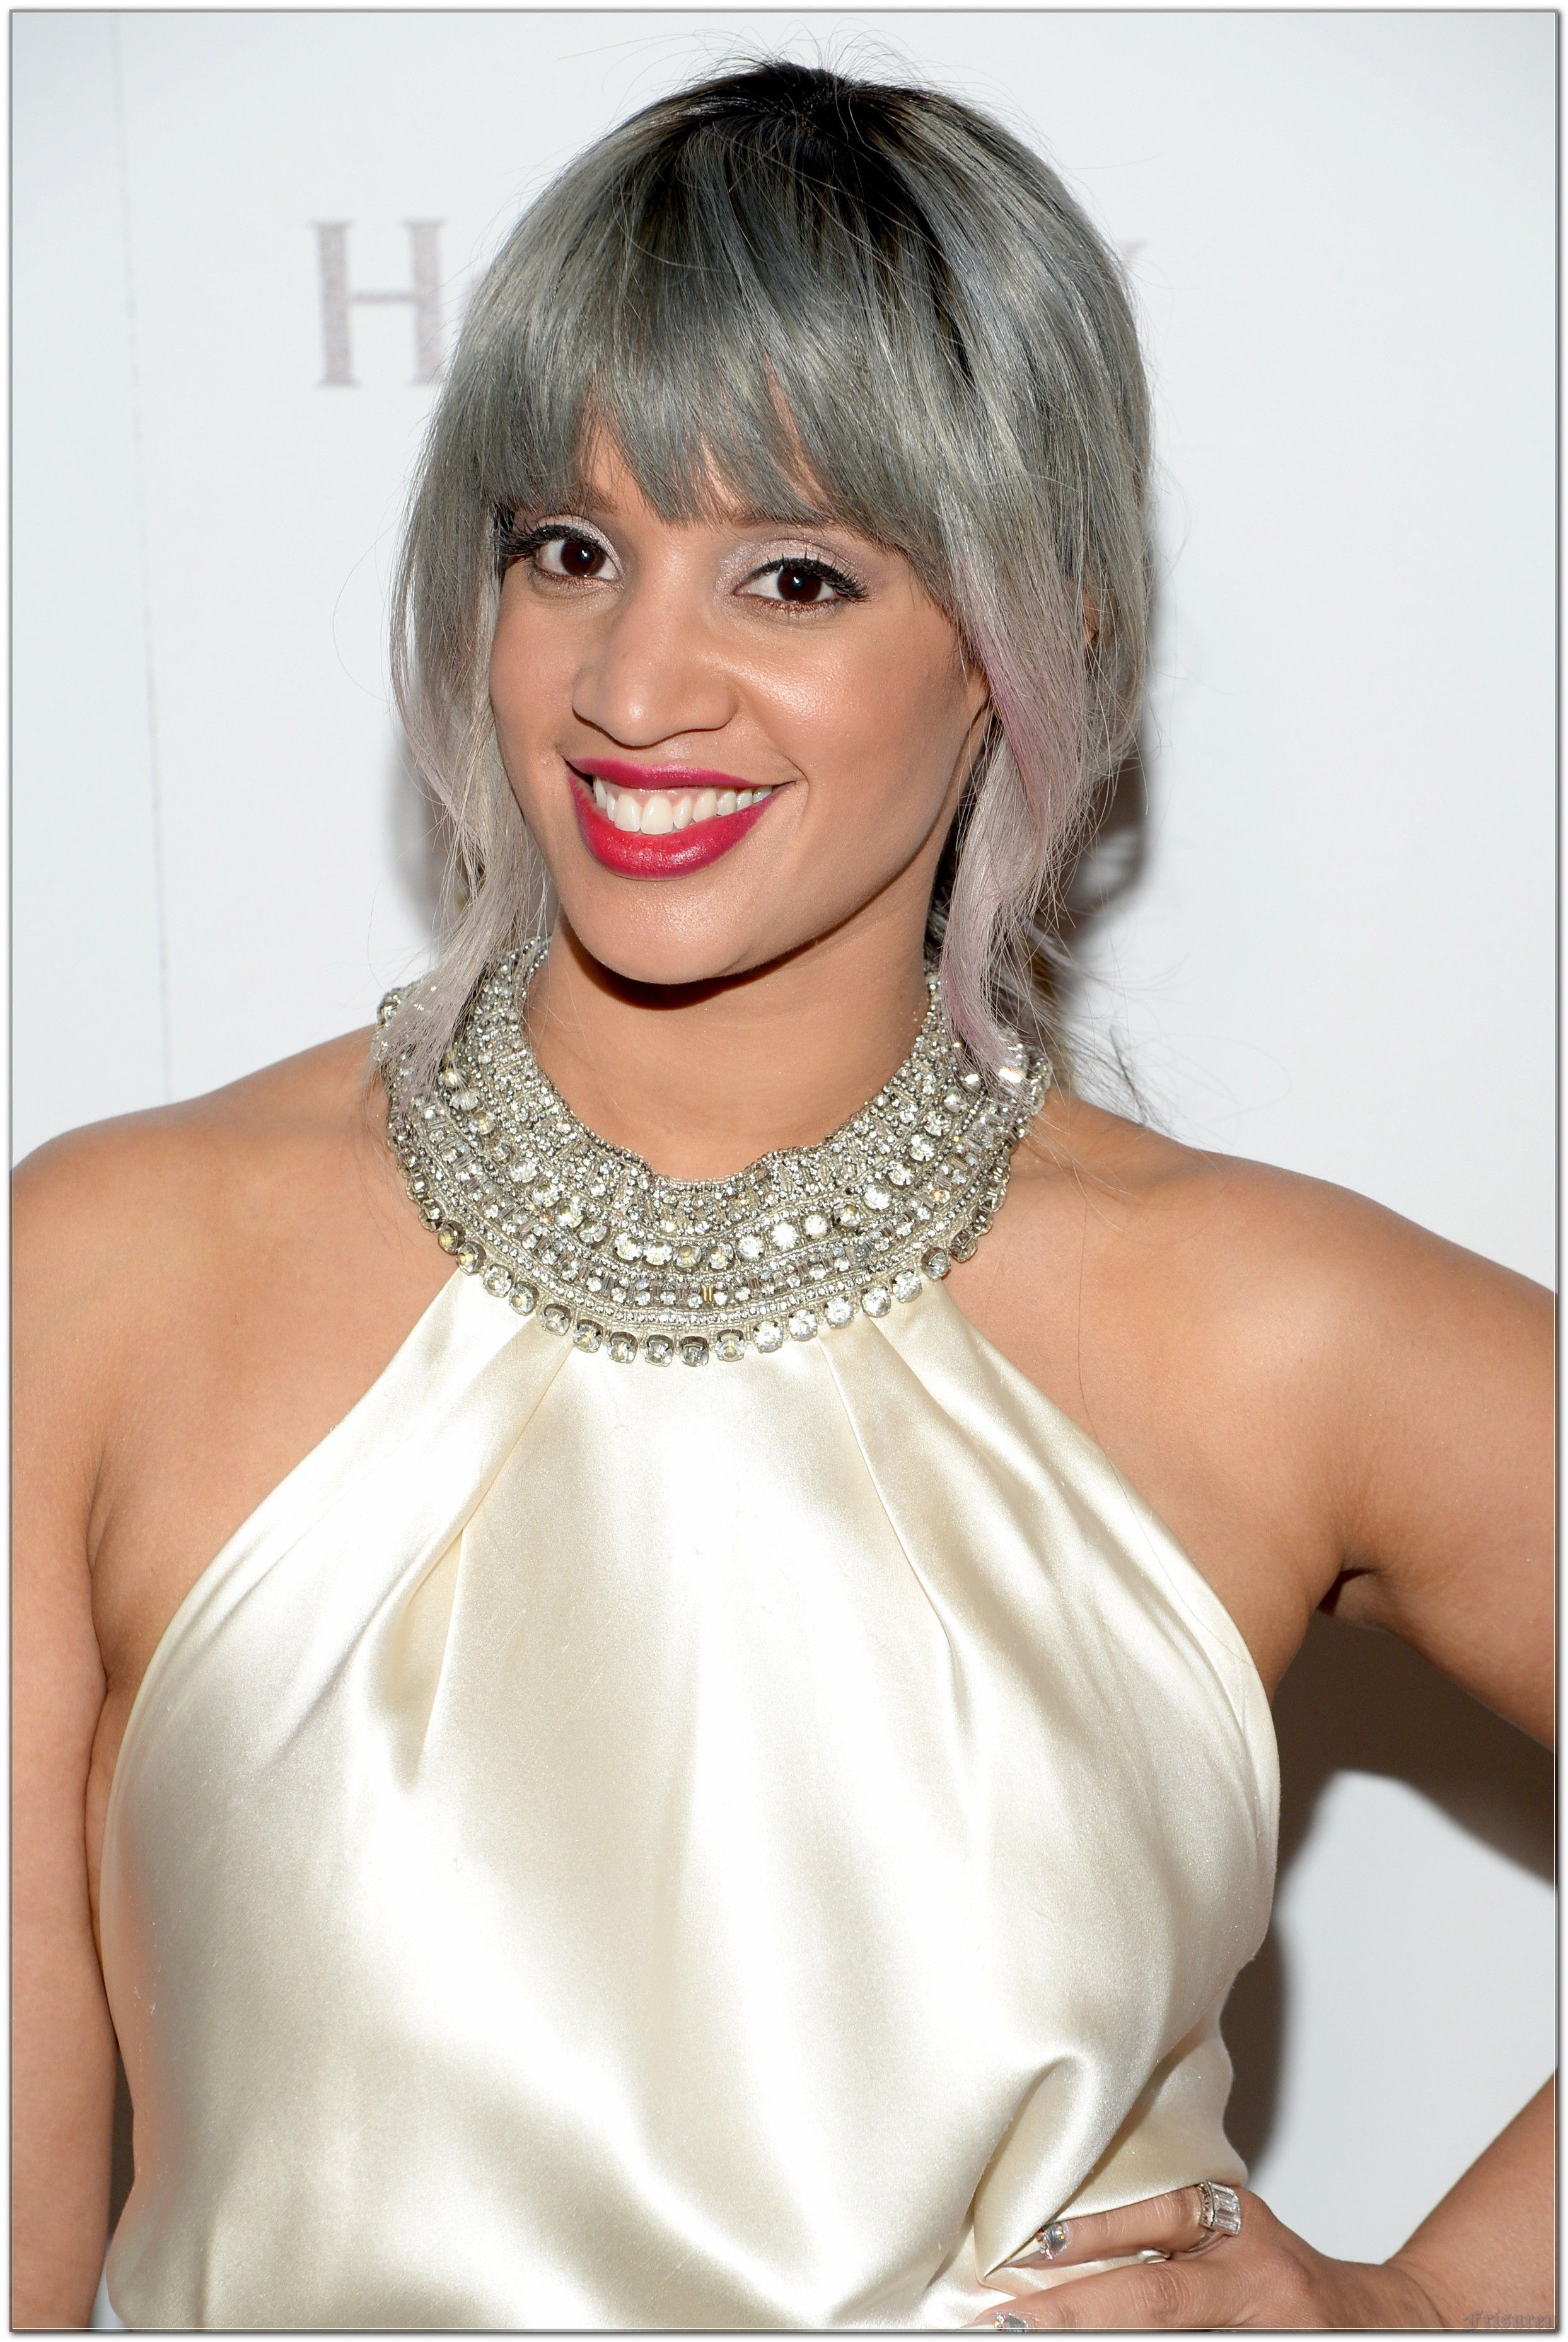 5 Things To Do Immediately About Frisuren for 2021